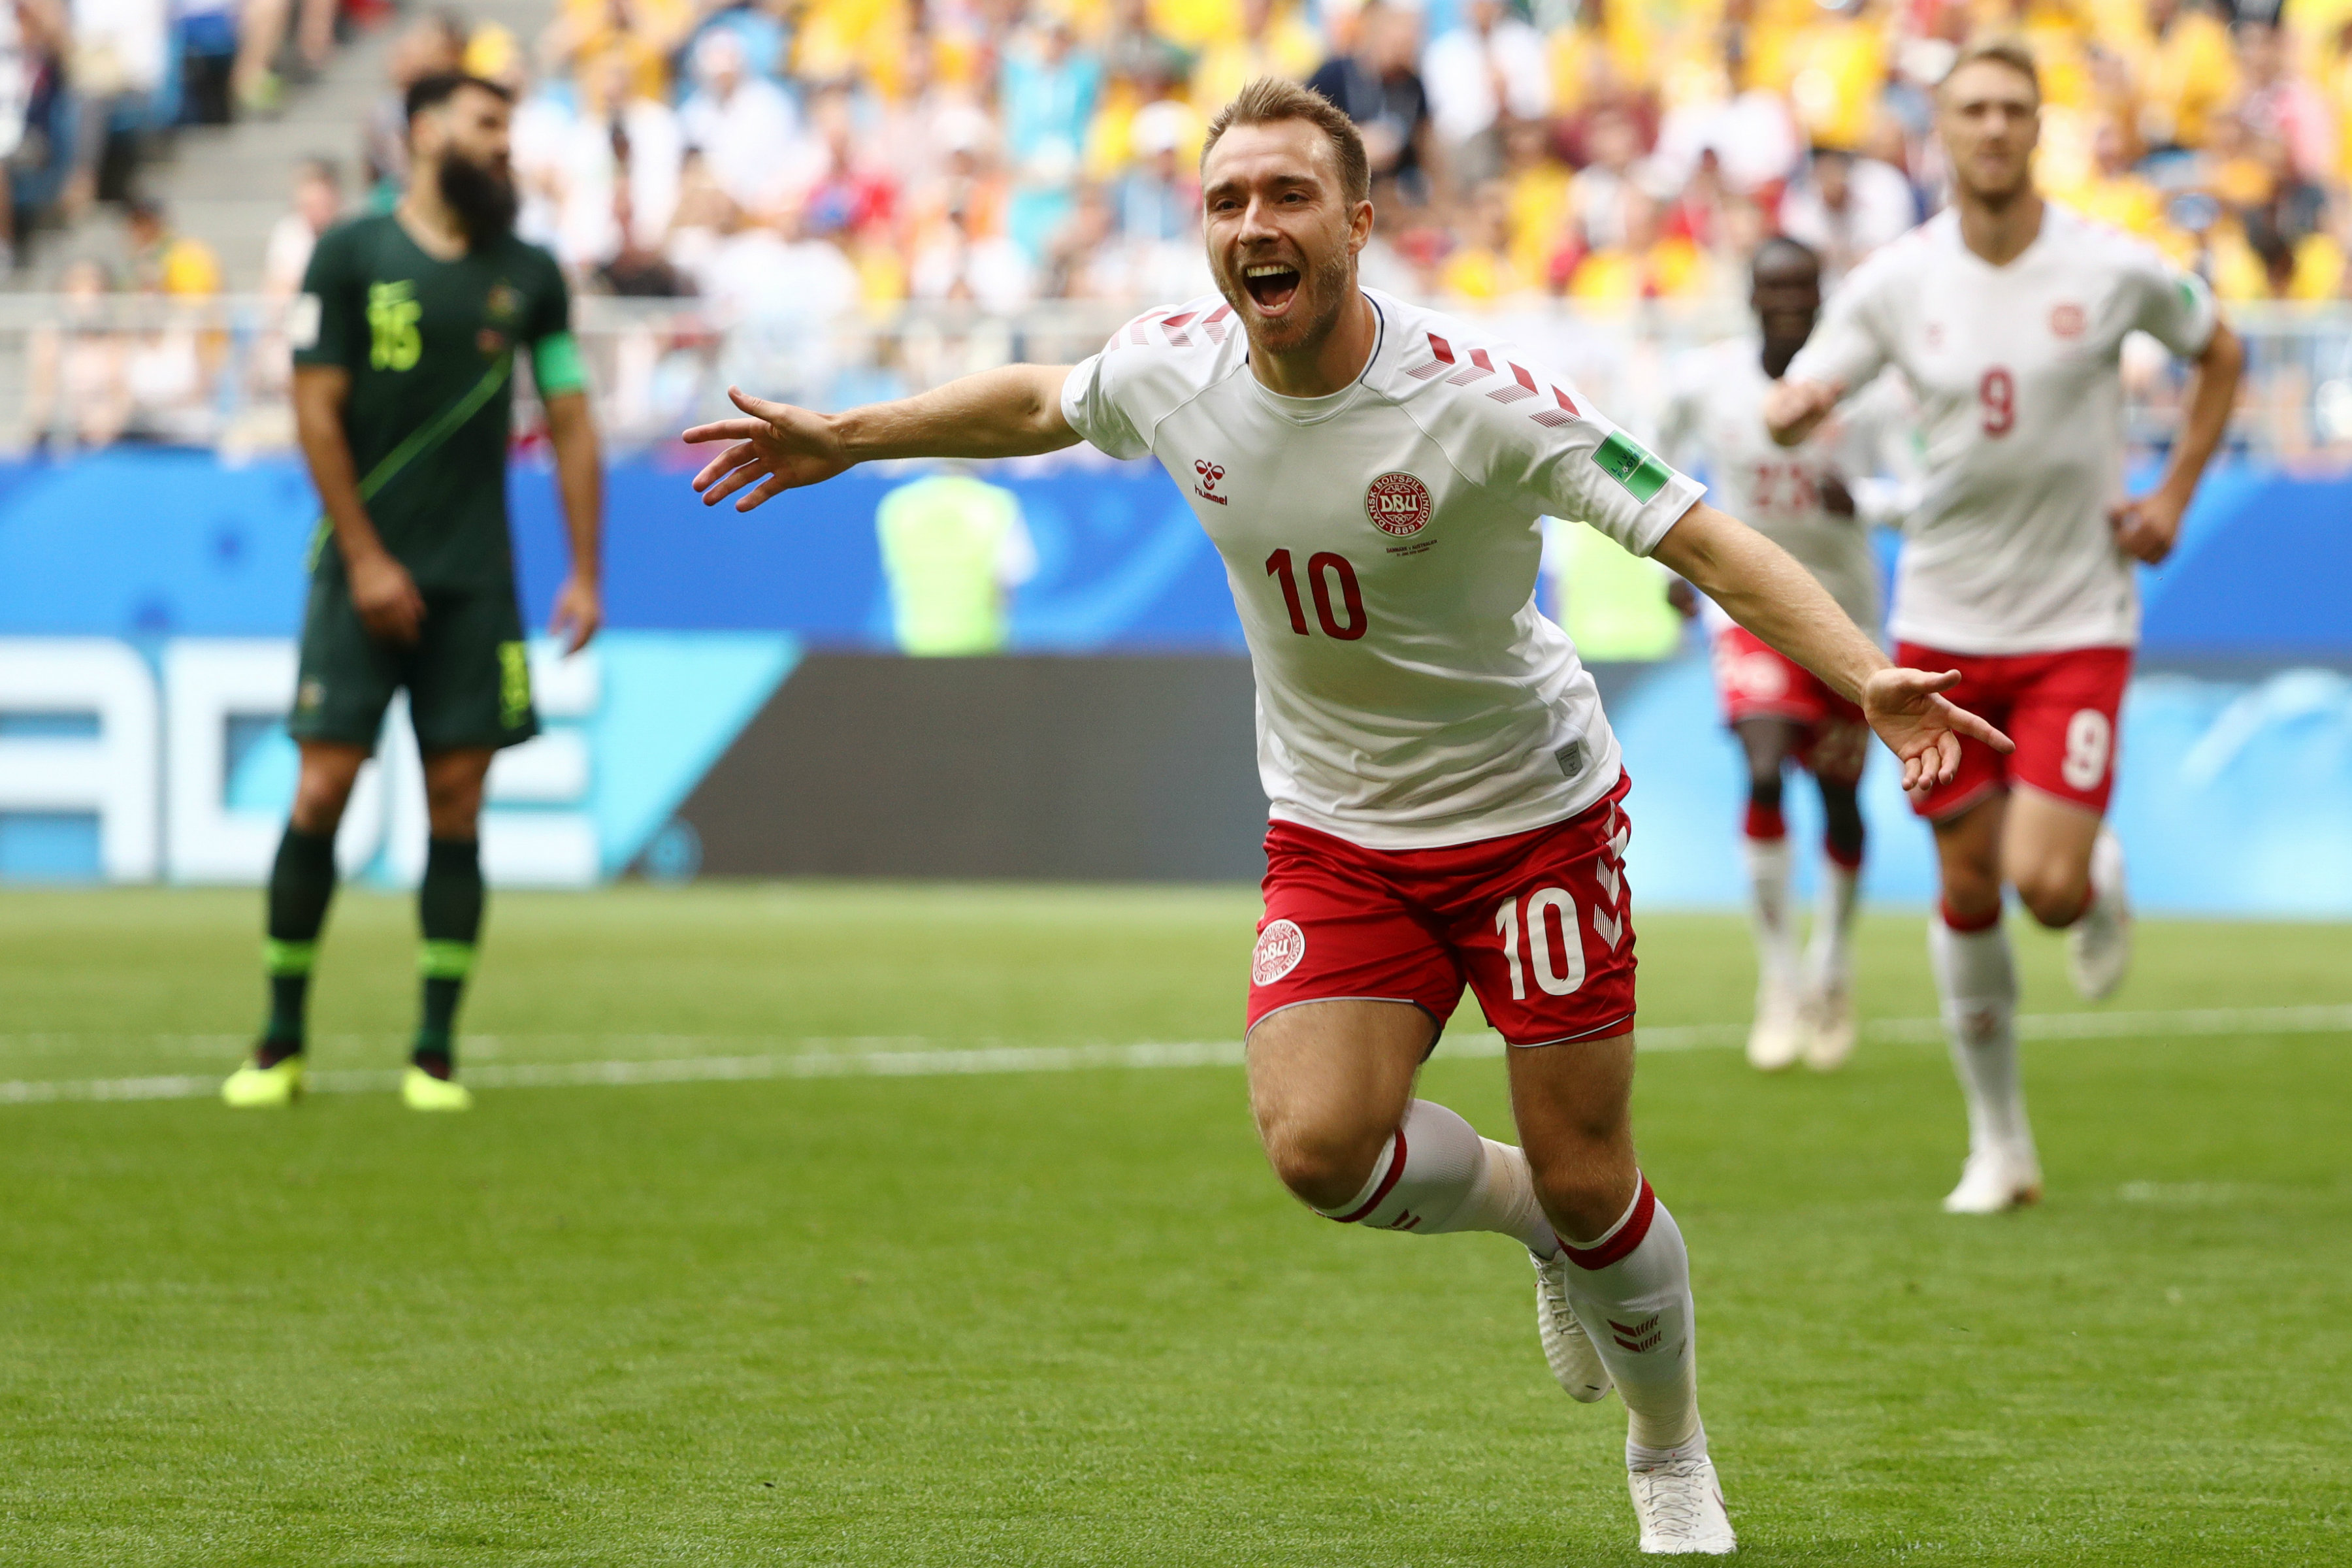 Christian Eriksen celebrates opening the scoring against the Socceroos.